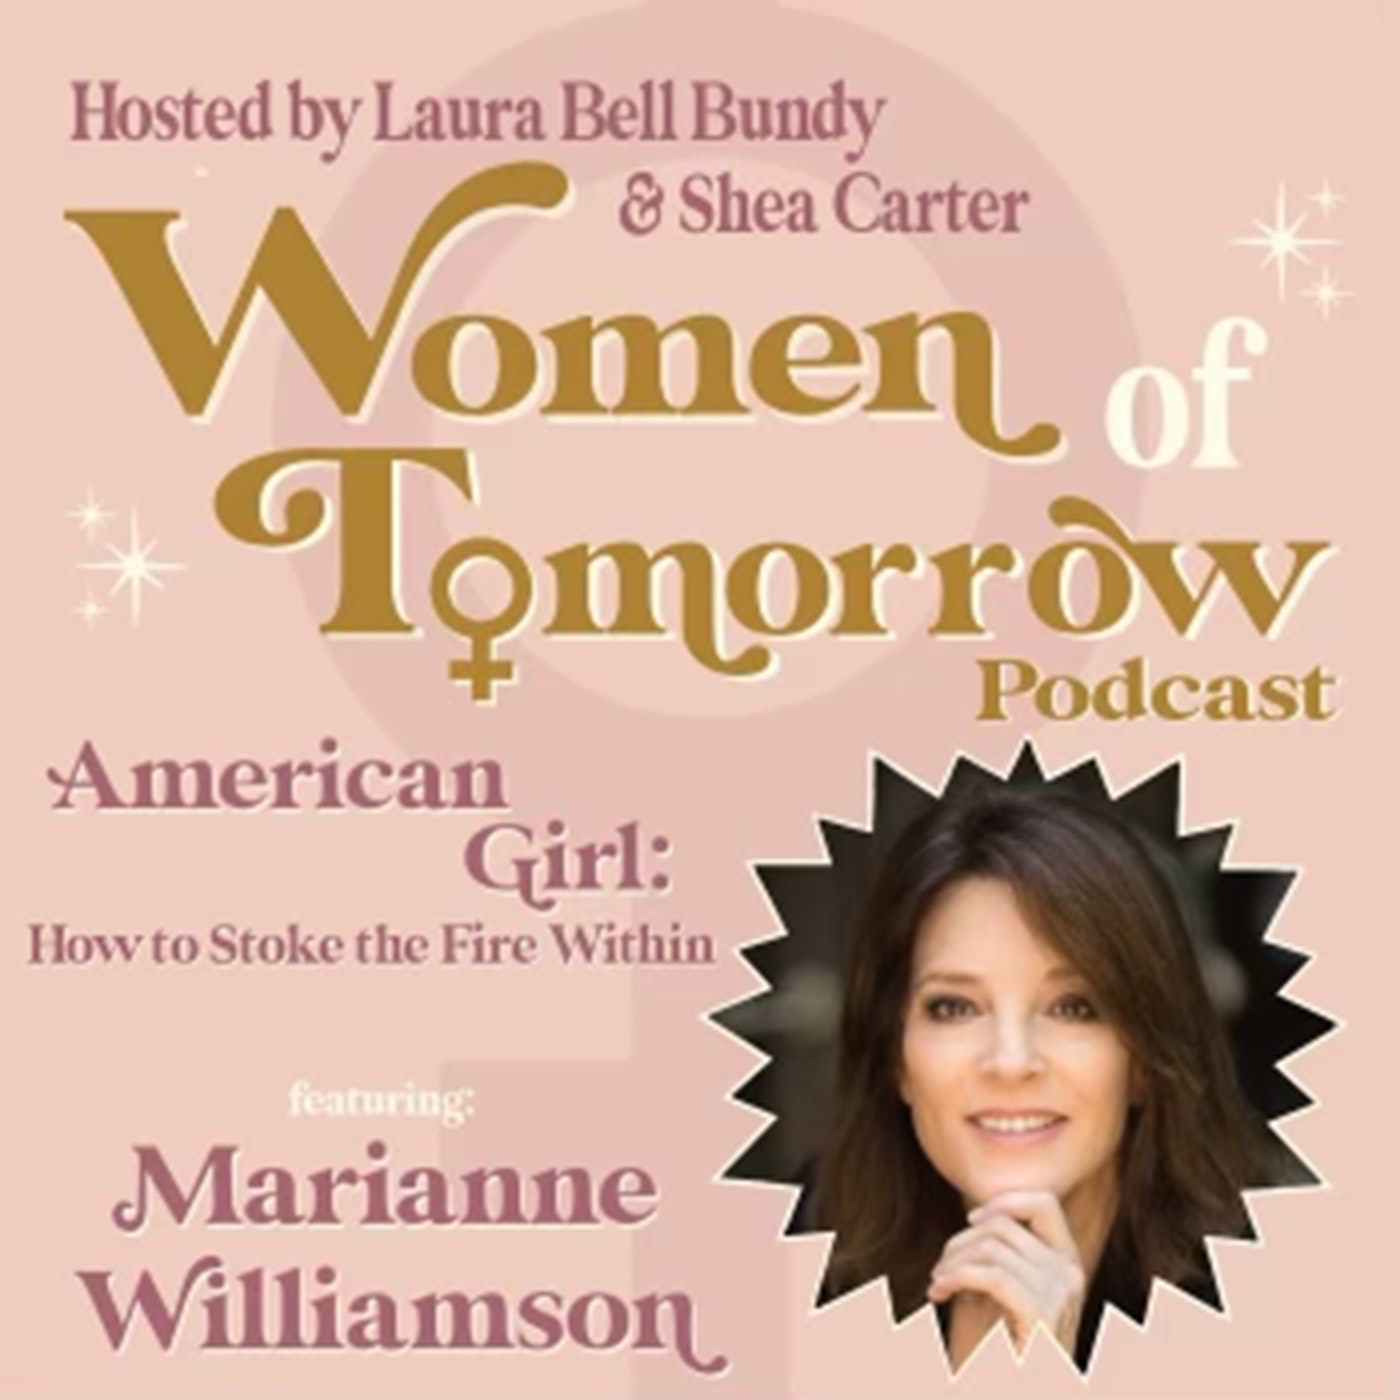 """#5 - """"American Girl"""" with Marianne Williamson"""